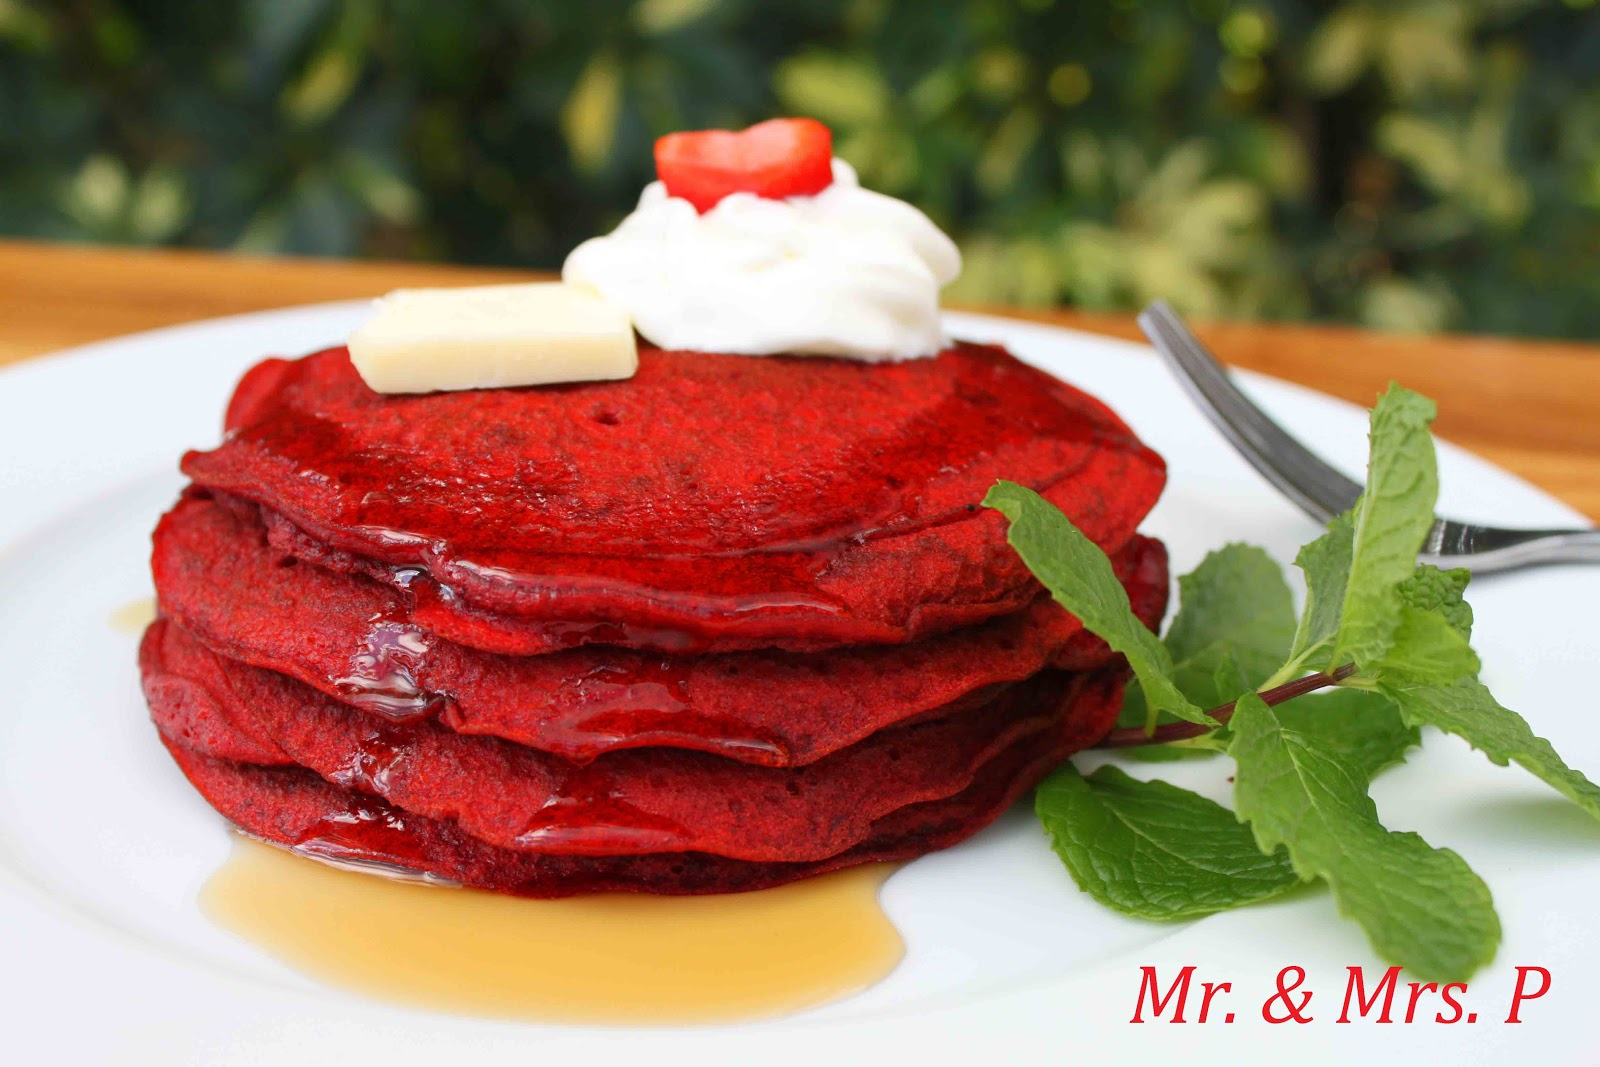 Red Velvet Pancakes Images - Frompo